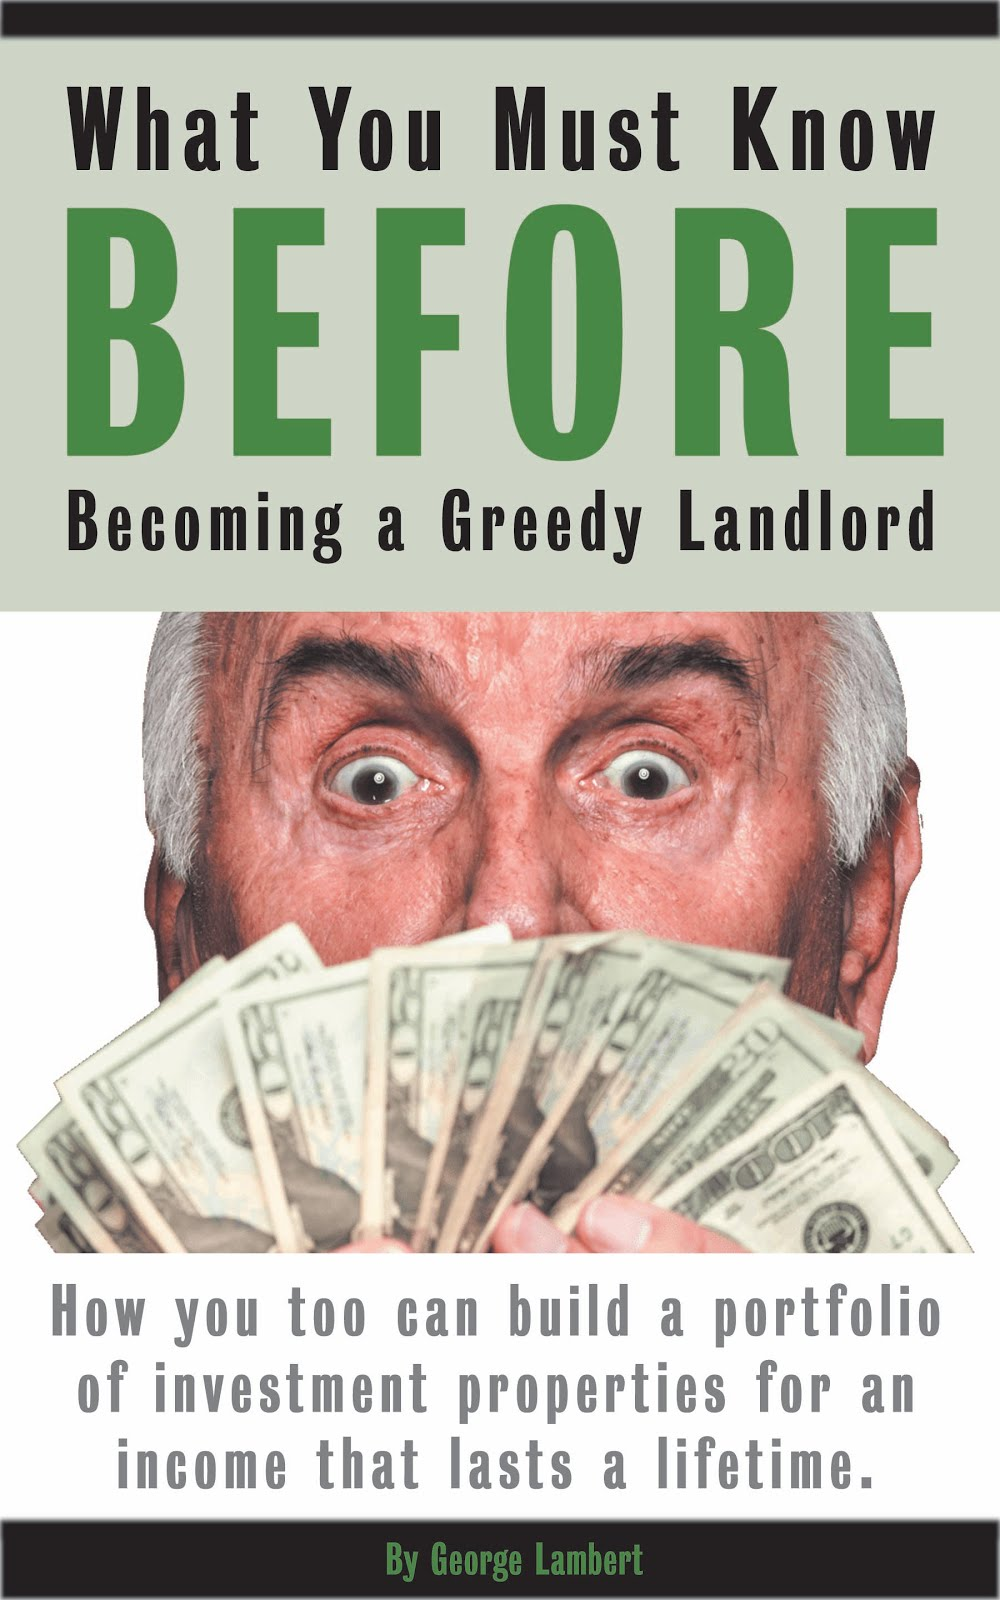 What You Must Know BEFORE Becoming a Greedy Landlord